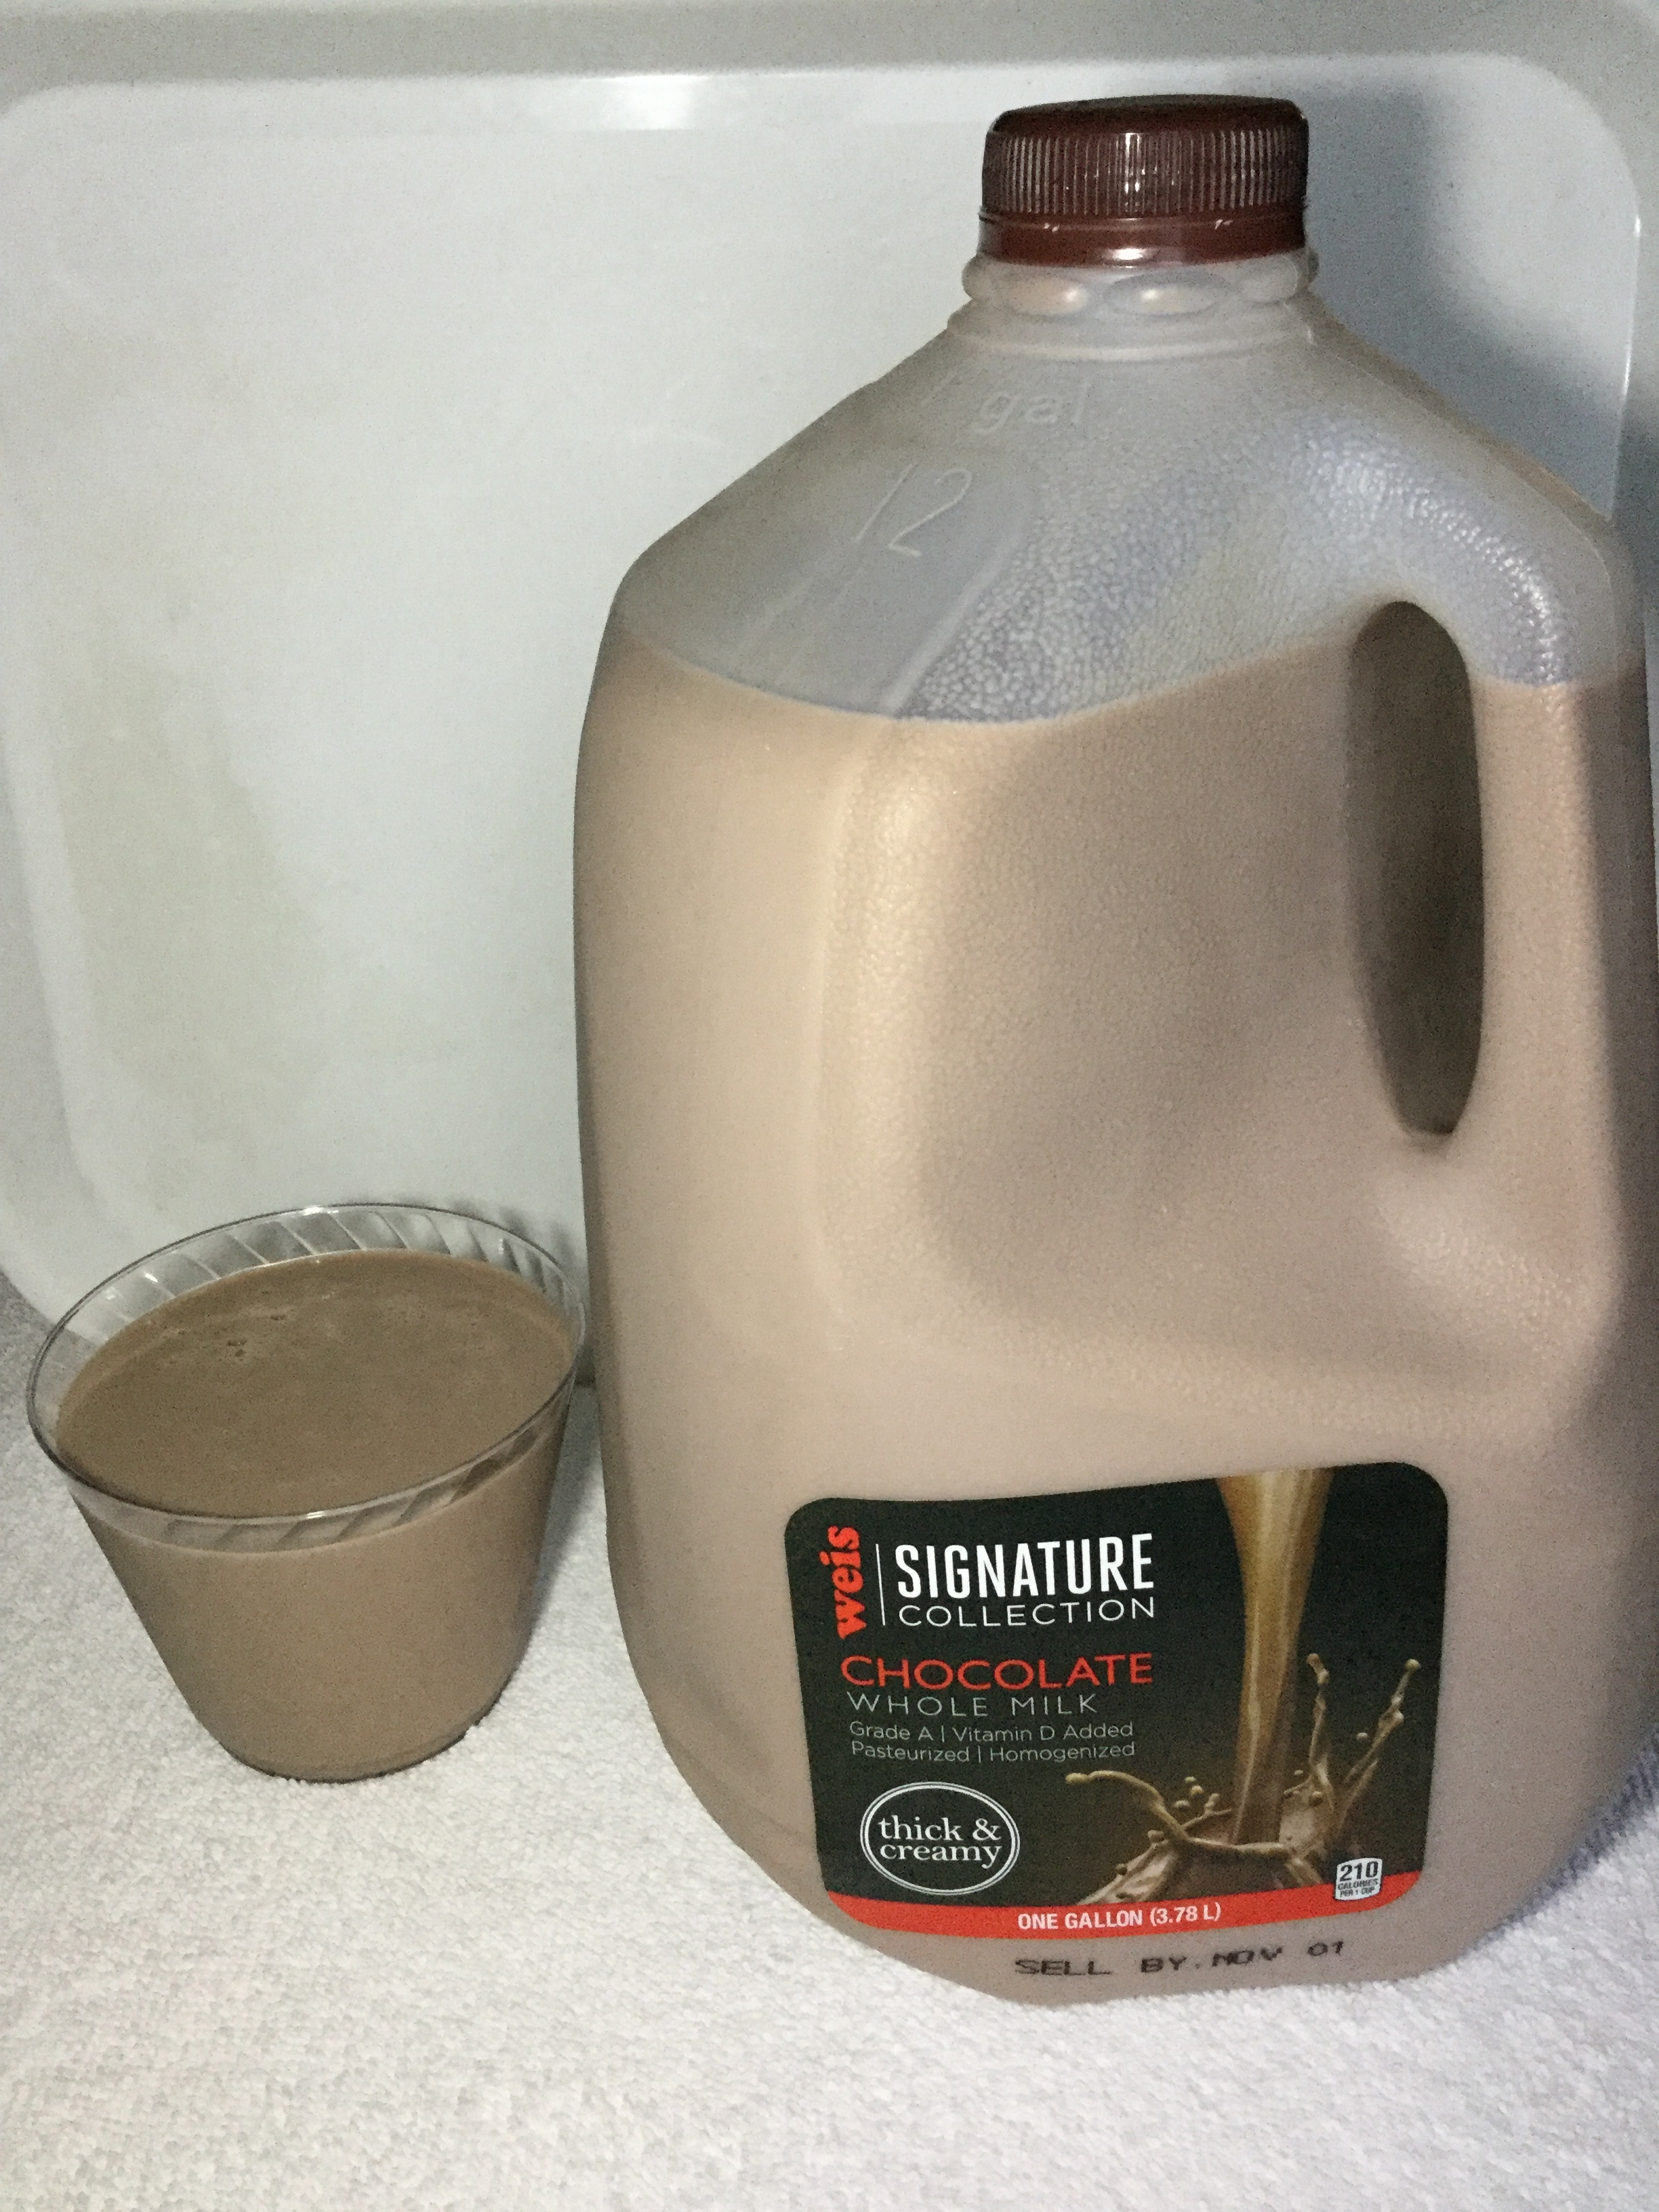 Weis Signature Collection Chocolate Milk Cup